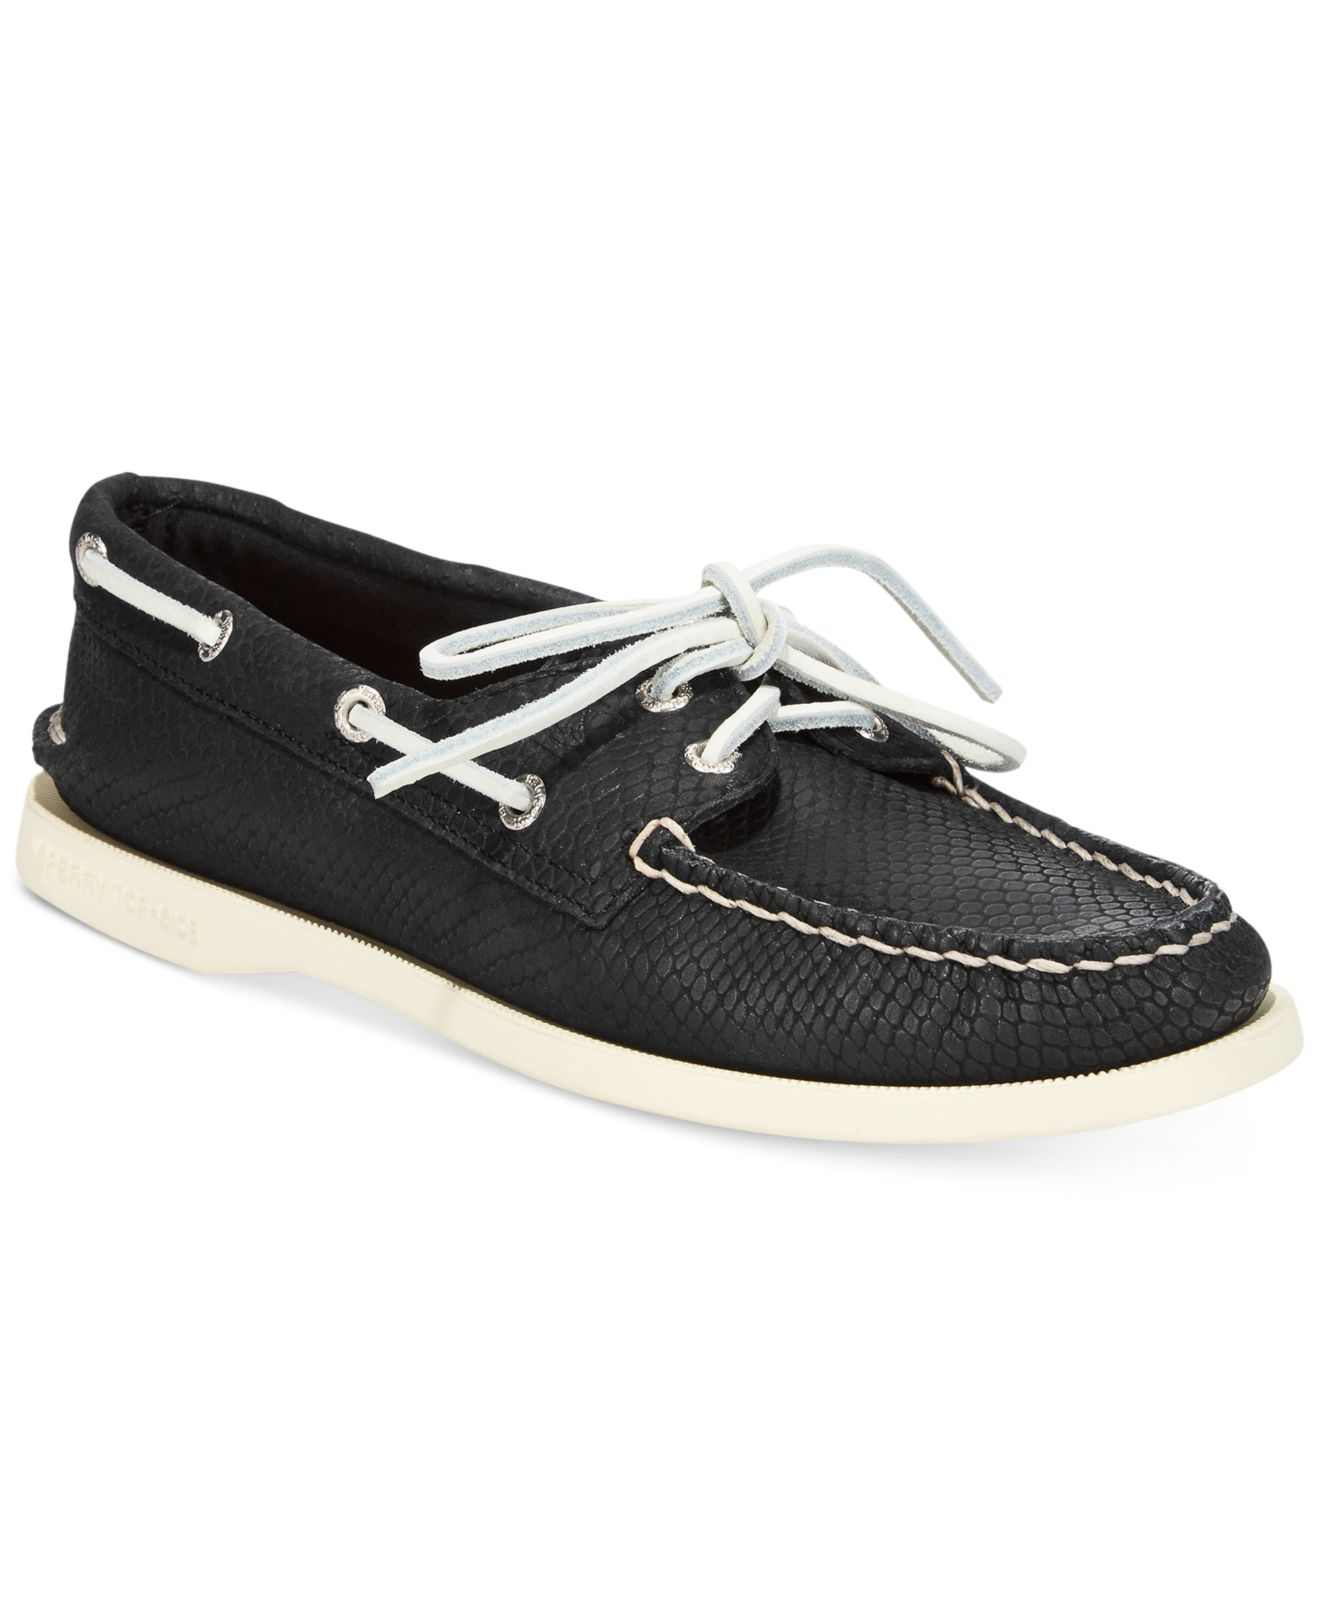 Lyst Sperry Top Sider Women s Authentic Original A o Python Boat